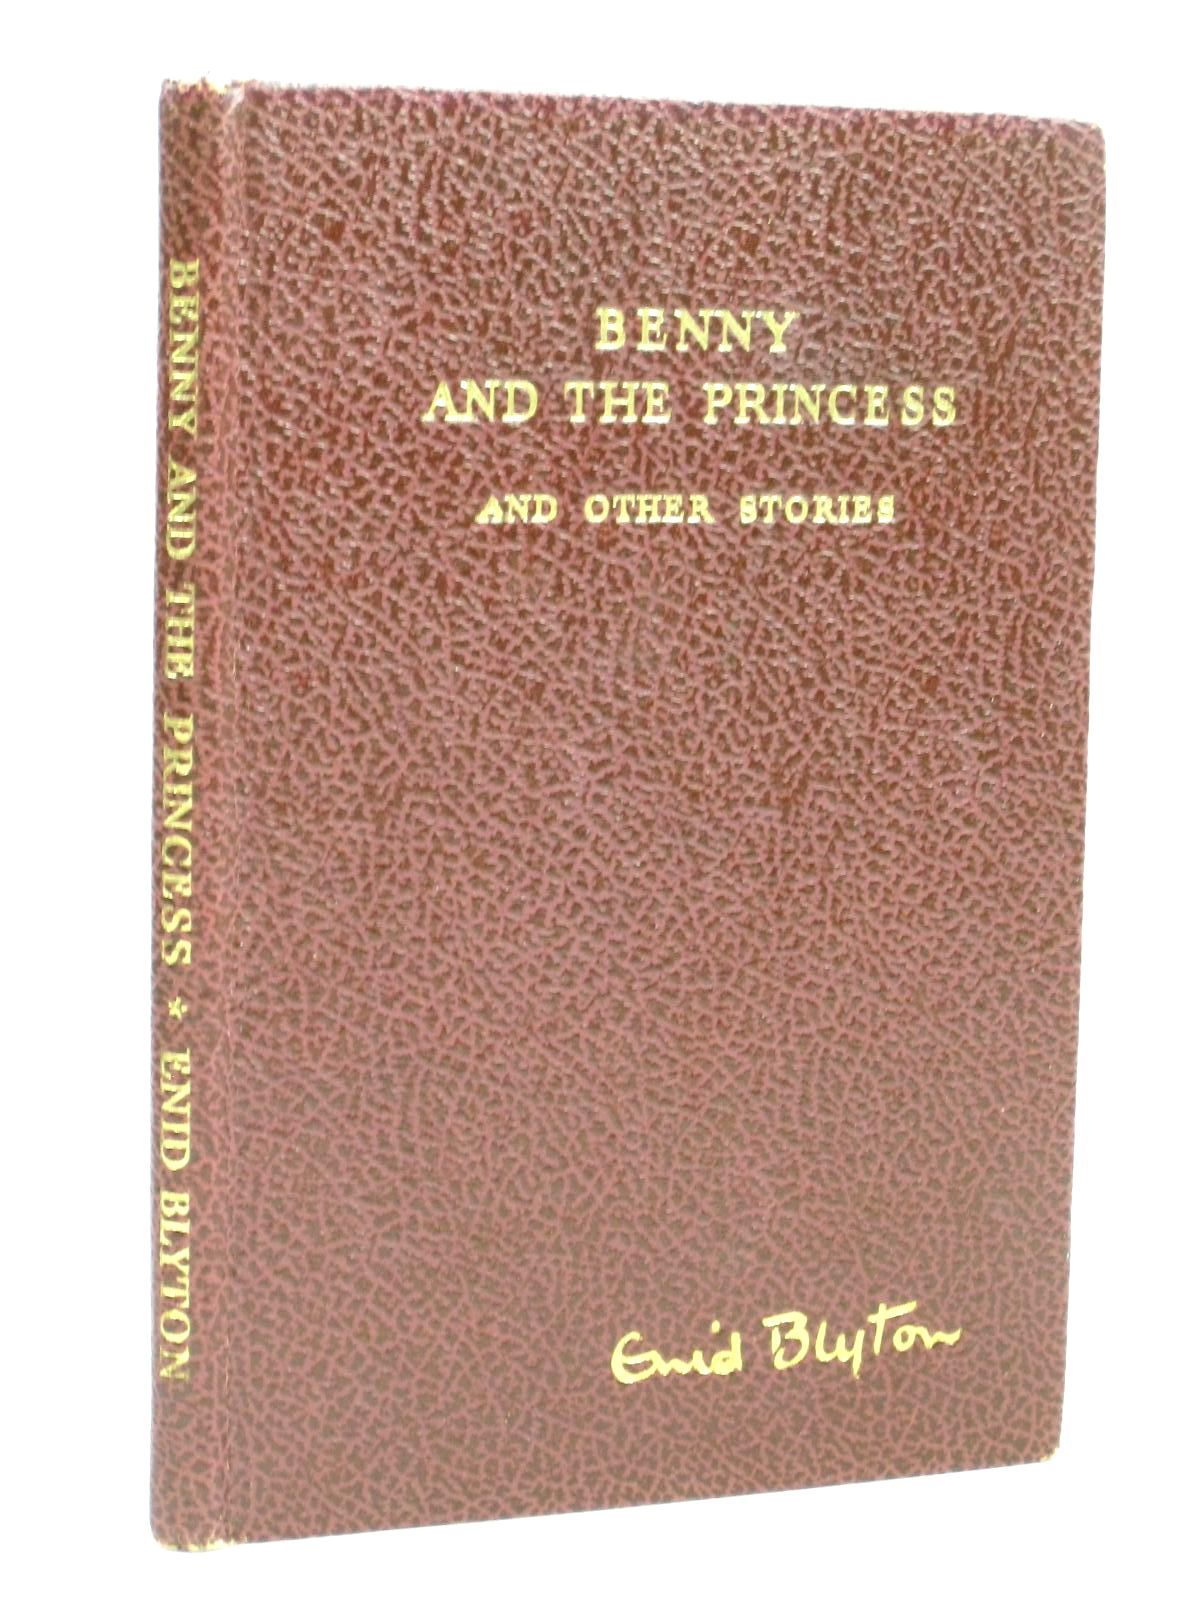 Photo of BENNY AND THE PRINCESS AND OTHER STORIES written by Blyton, Enid illustrated by Venus, Sylvia published by Pitkin (STOCK CODE: 1315836)  for sale by Stella & Rose's Books